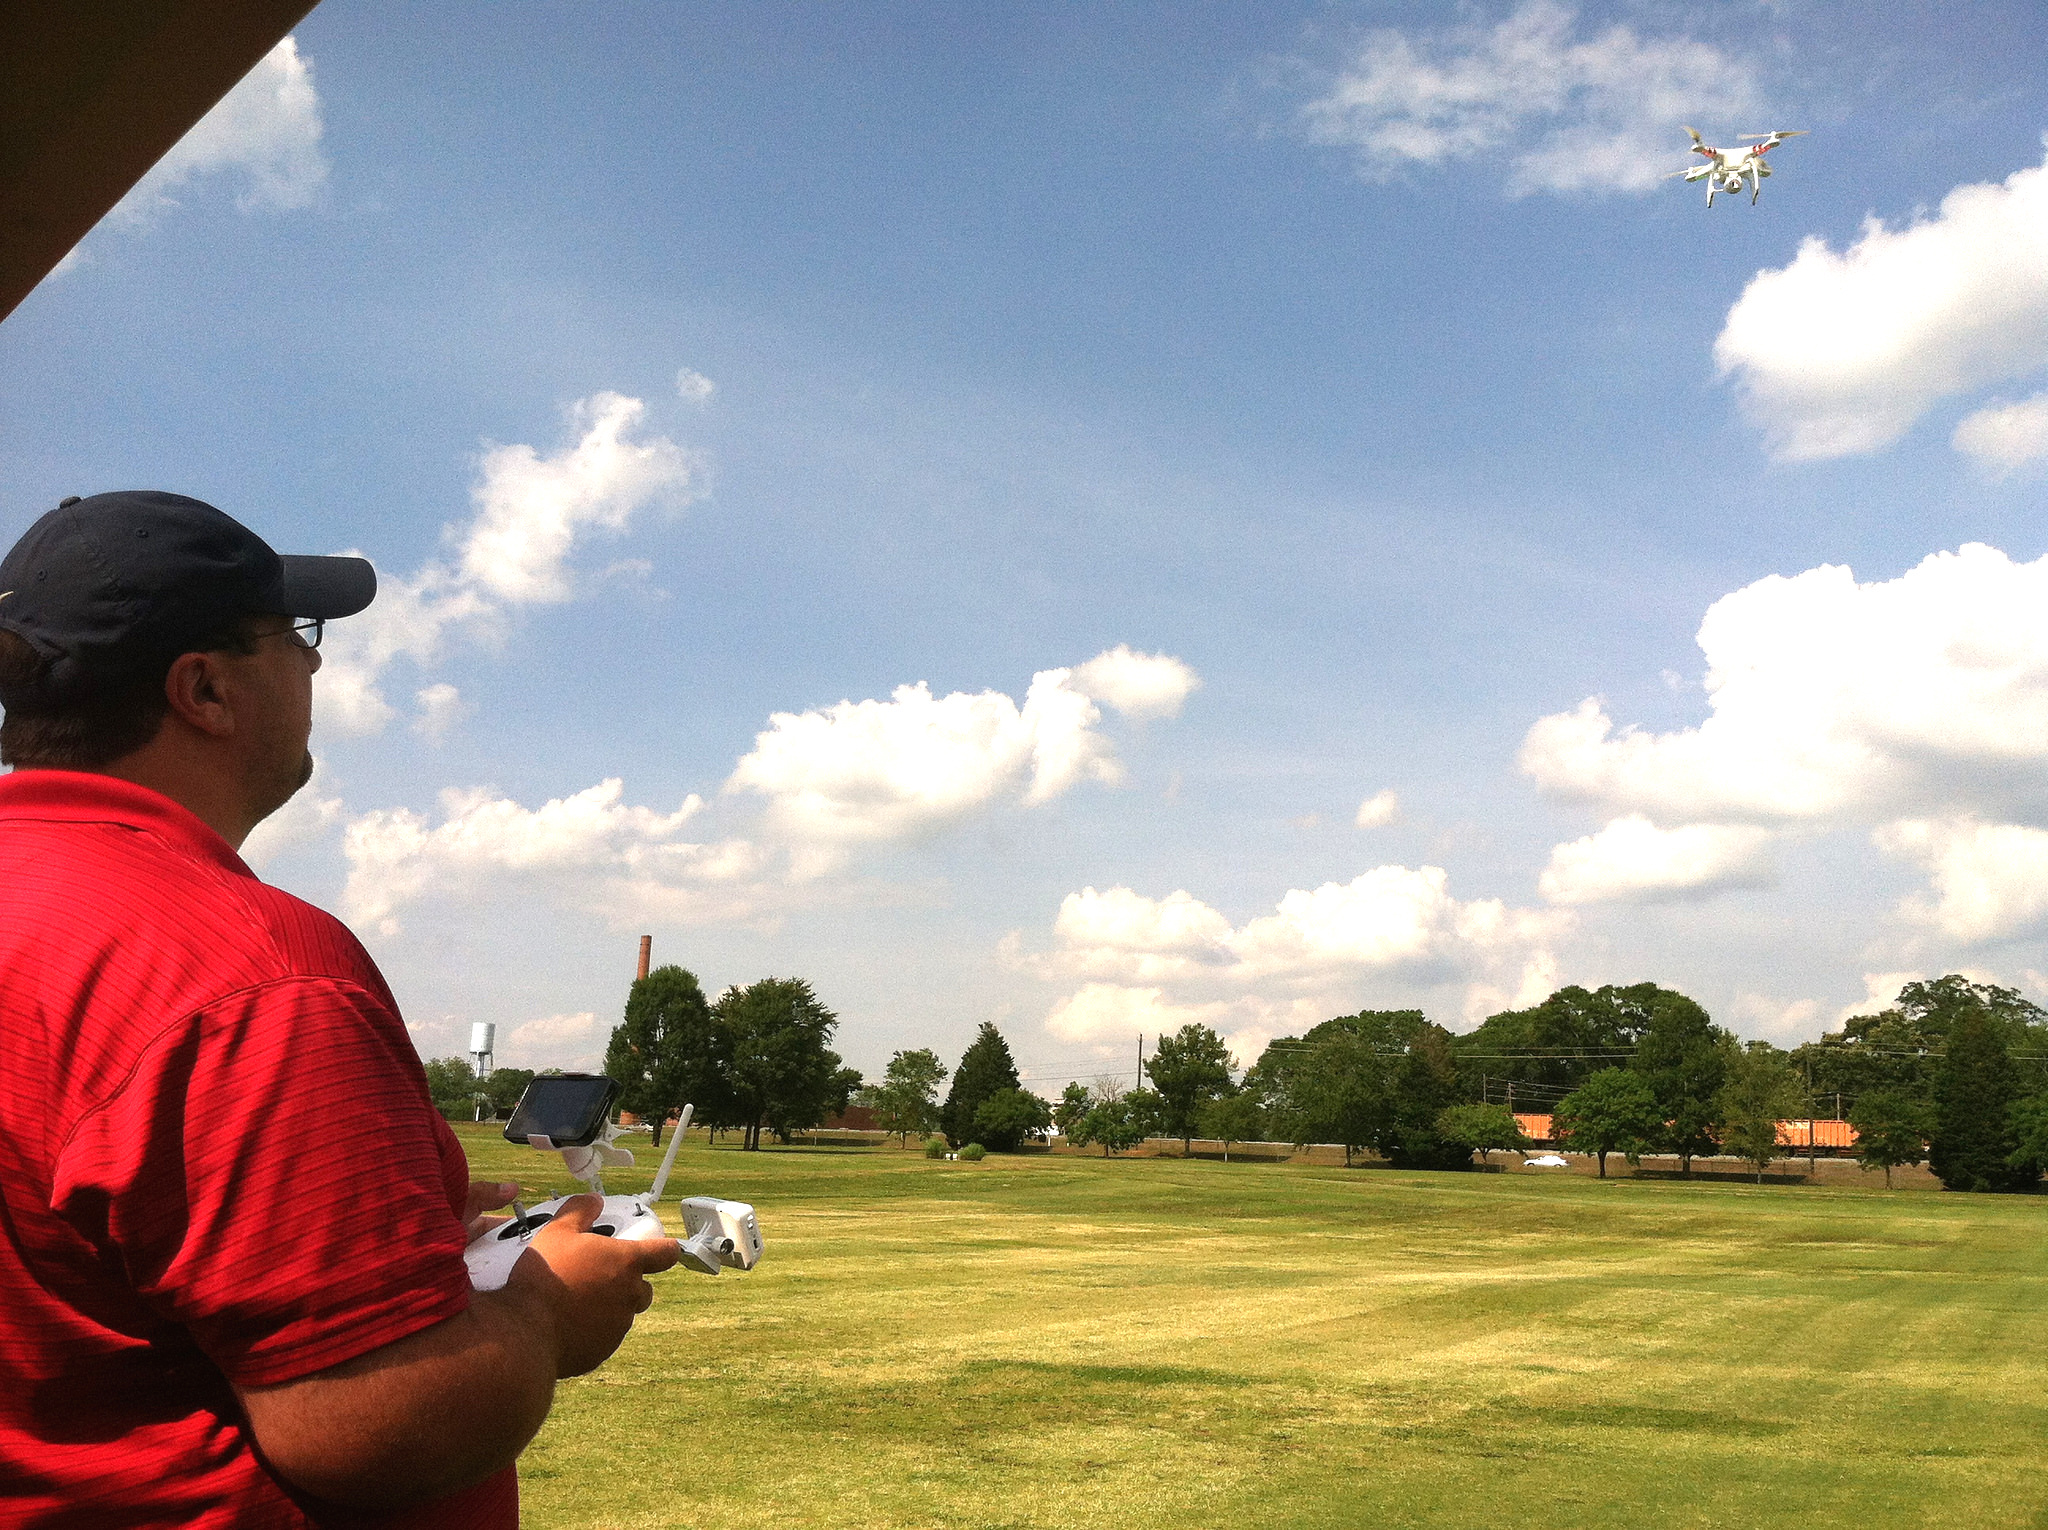 """University of Georgia research technician Clay Bennett """"pilots"""" an aerial drone over turfgrass research plots on the UGA campus in Griffin, Georgia. UGA Extension turfgrass specialist Clint Waltz uses the drone to reduce the amount of time he and Bennett spend documenting data in fields. They also use the drone to gather supplemental data through bird's-eye-view photographs of research plots."""